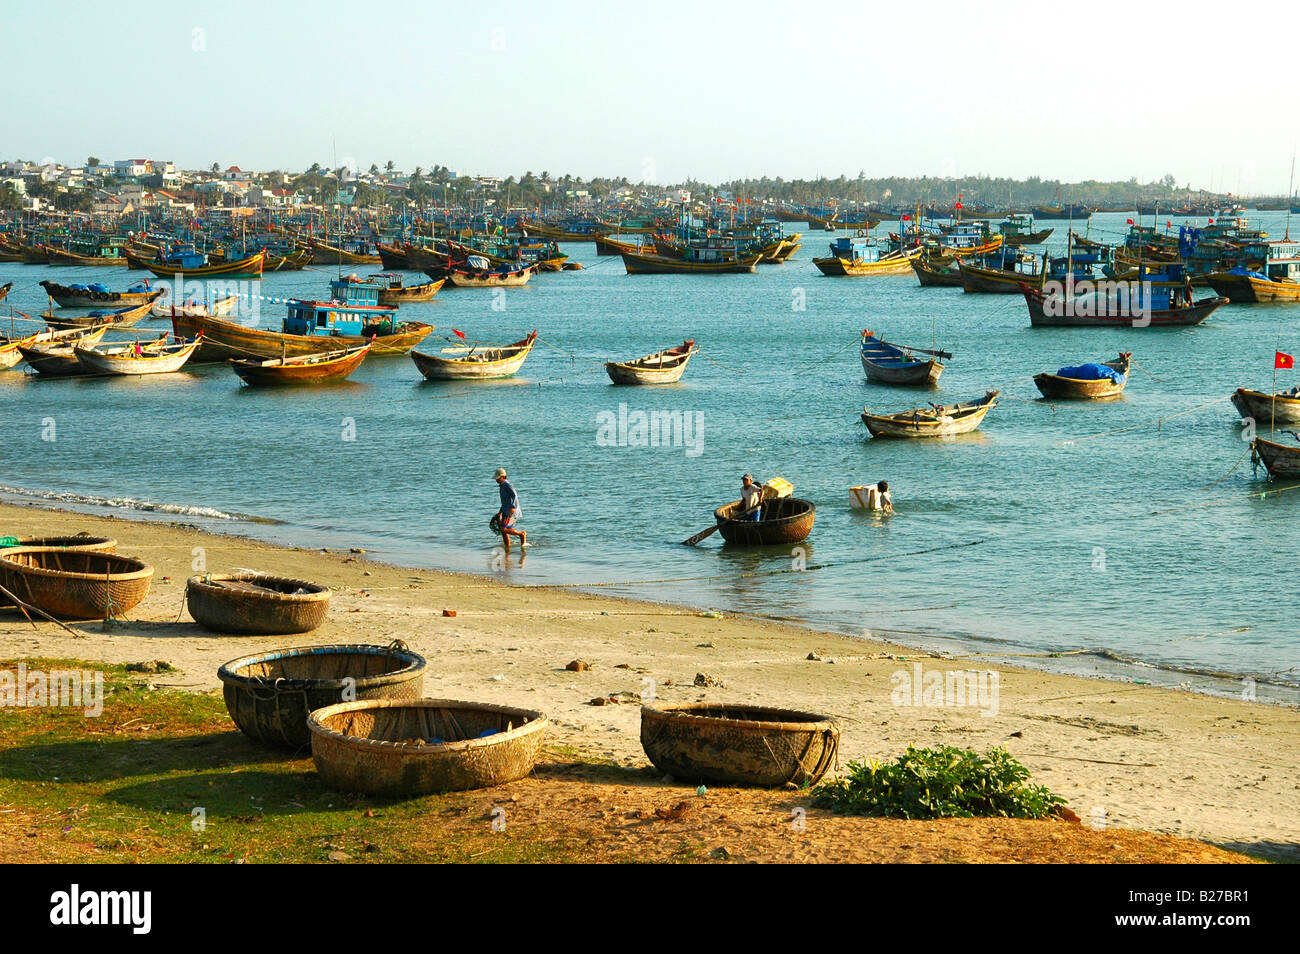 Fishing boats are moored at the fishing beach of Mui Ne, Viet Nam, Southeast Asia - Stock Image